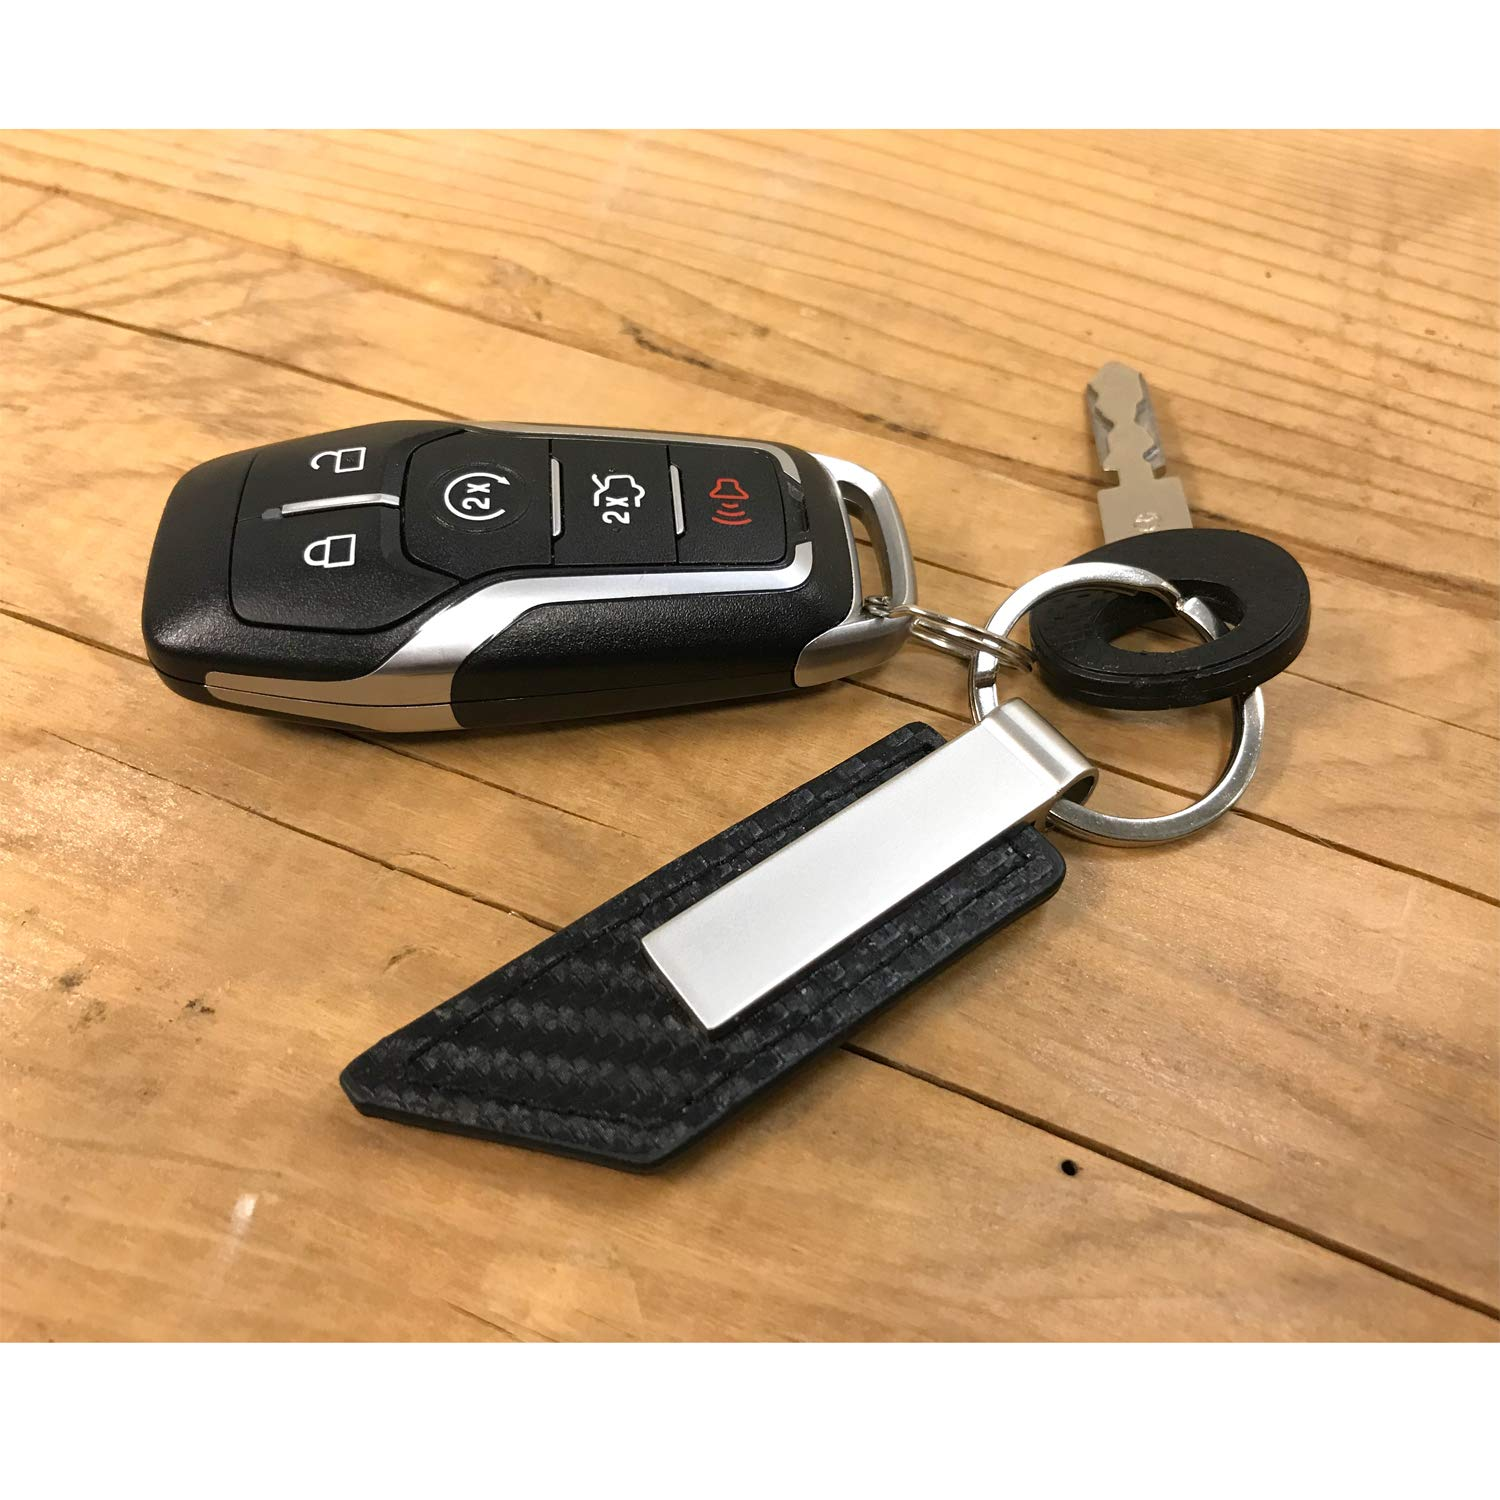 Honda HR-V Honda Carbon Fiber Texture Black Leather Strap Key Chain iPick Image